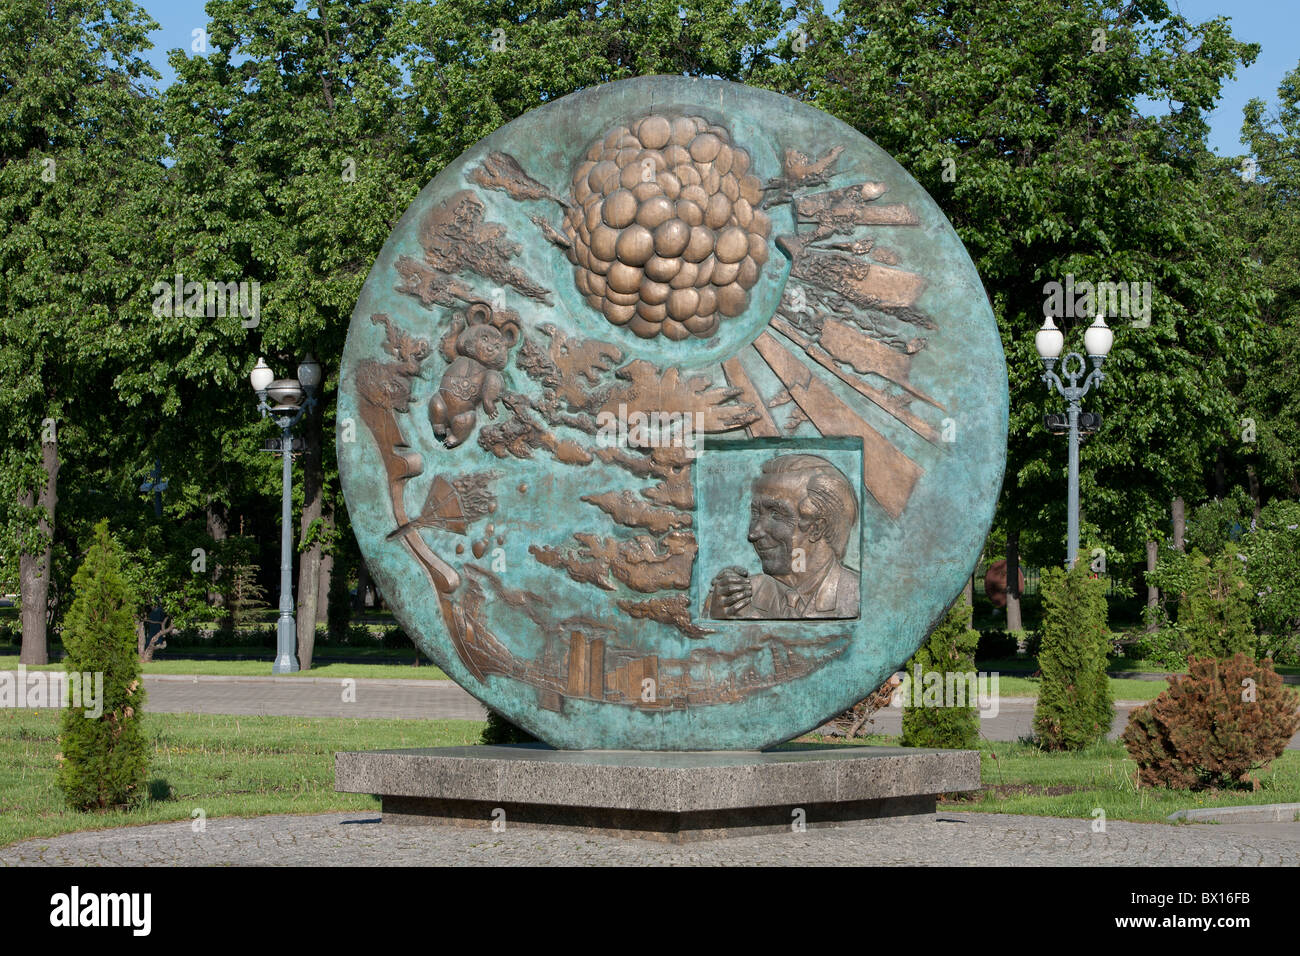 Monument outside Luzhniki Stadium (chief venue for the 1980 Summer Olympics) in Moscow, Russia - Stock Image